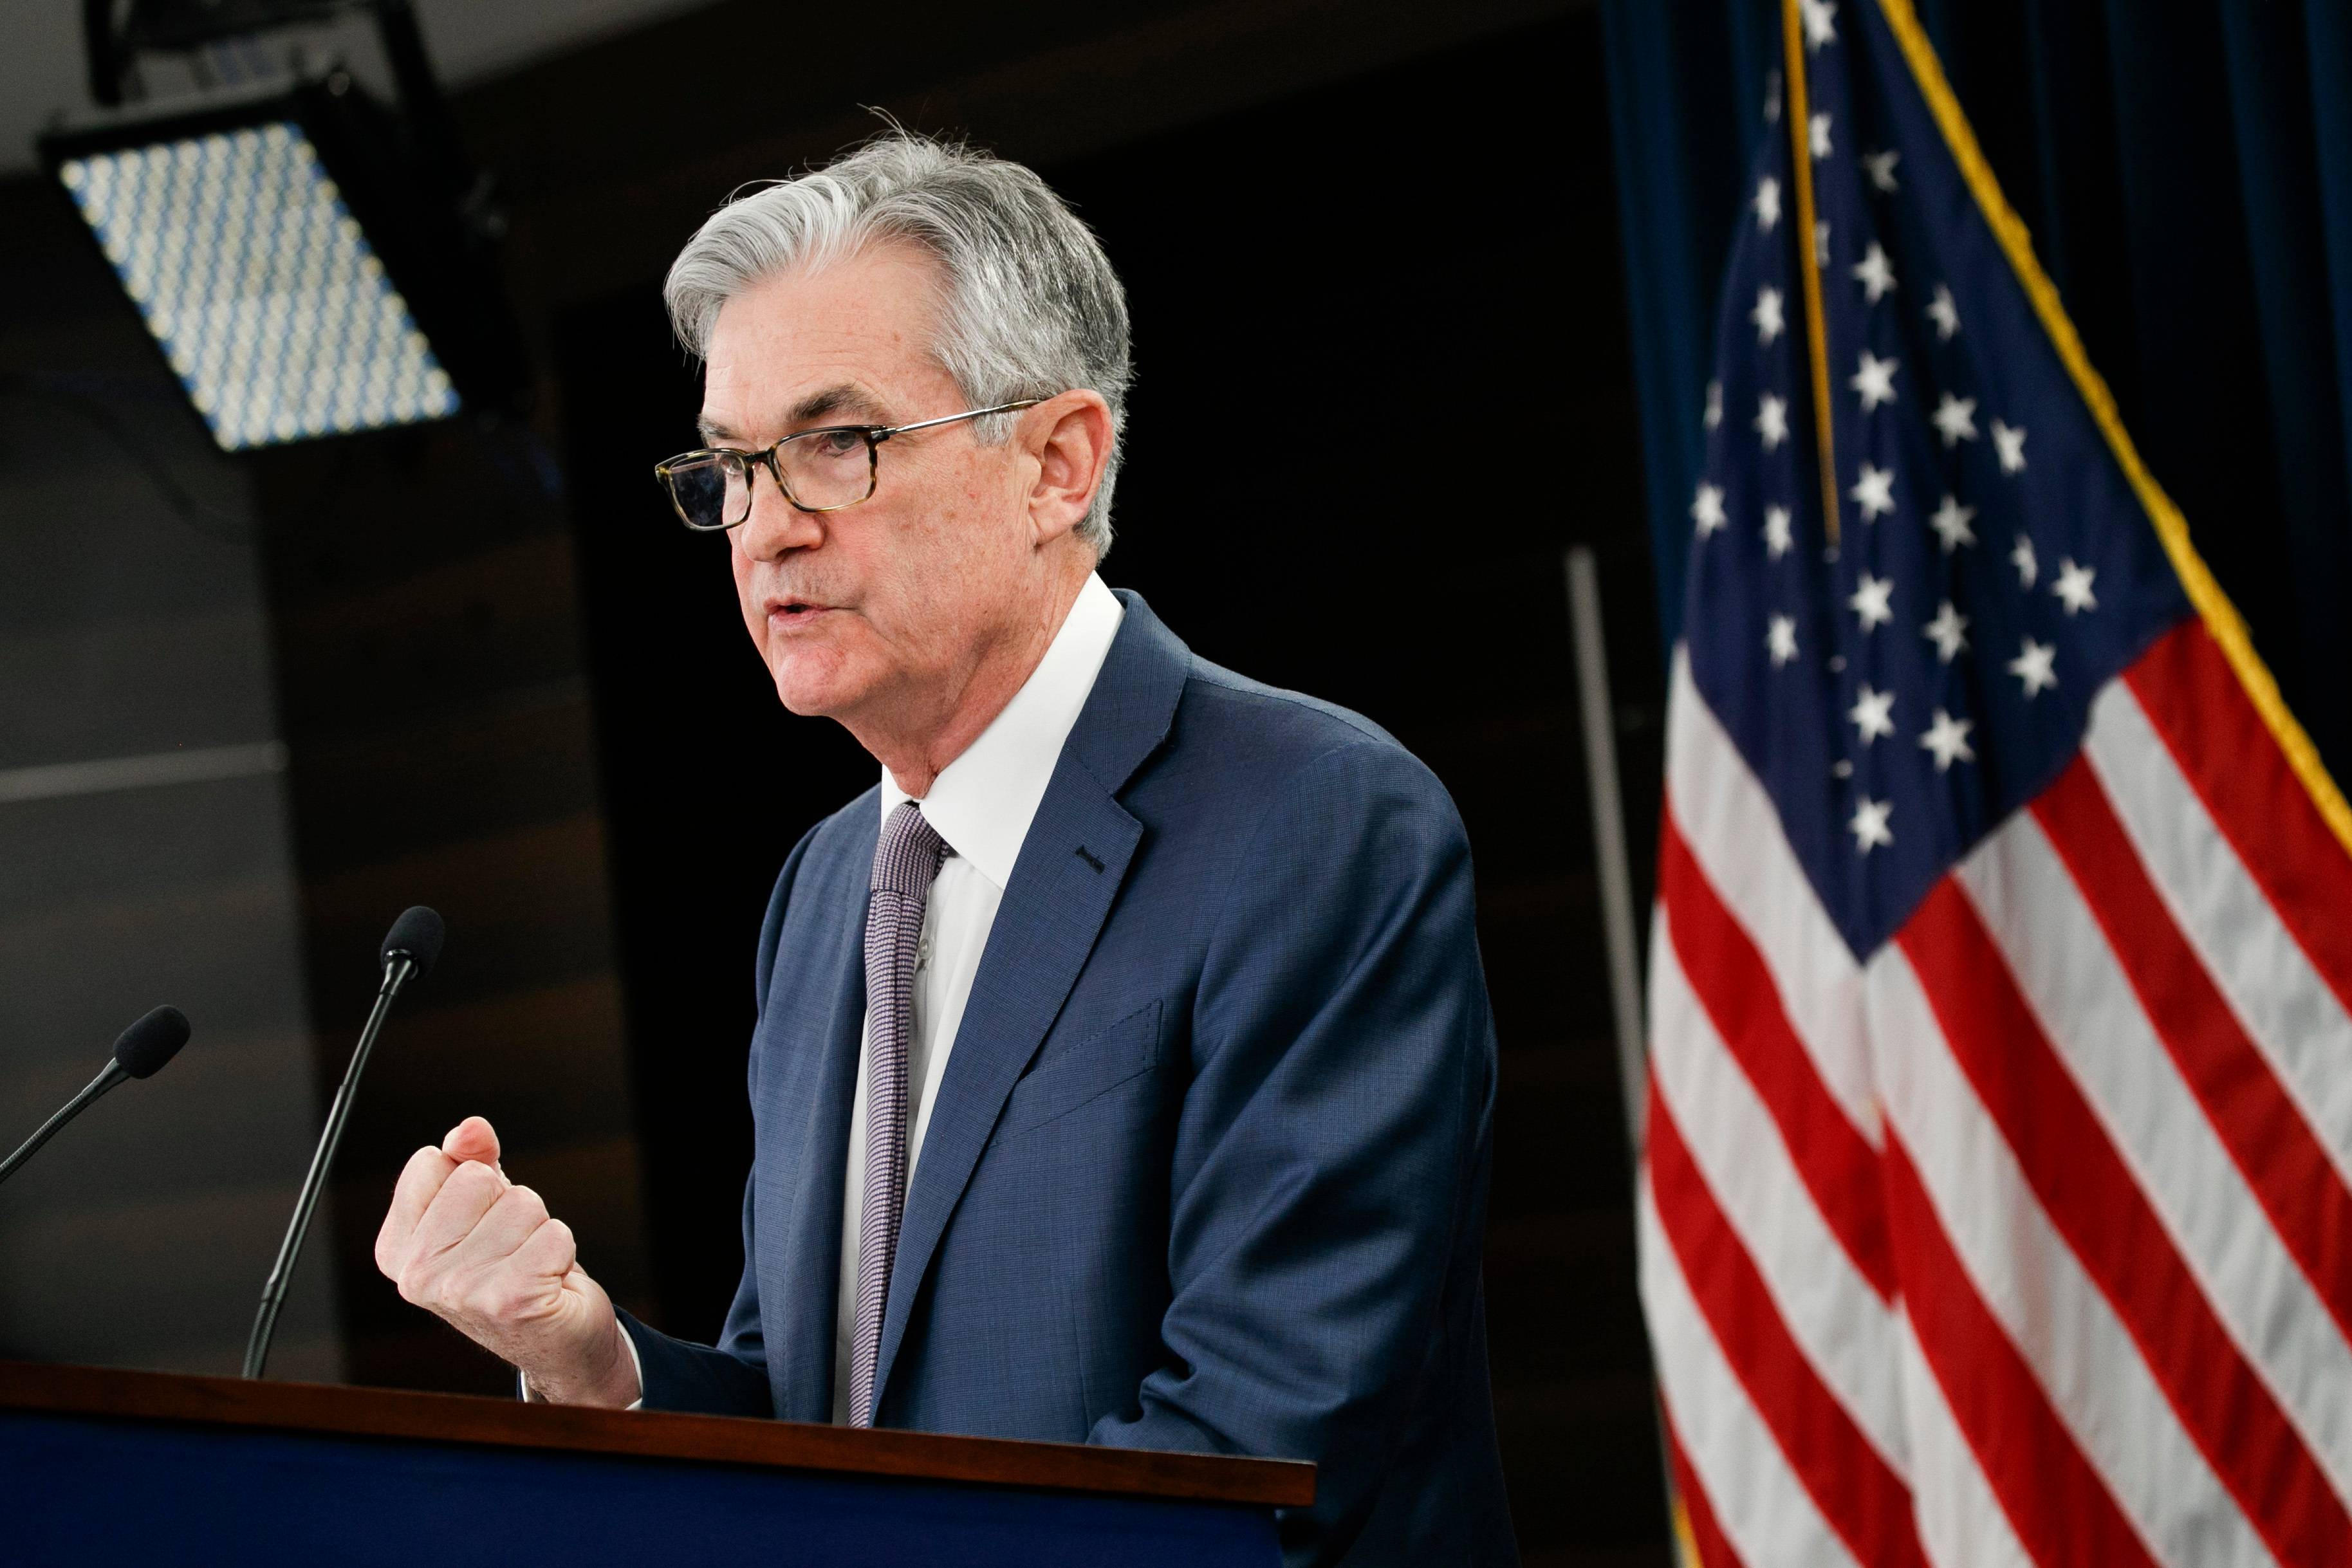 Federal Reserve Chair Jerome Powell with flag